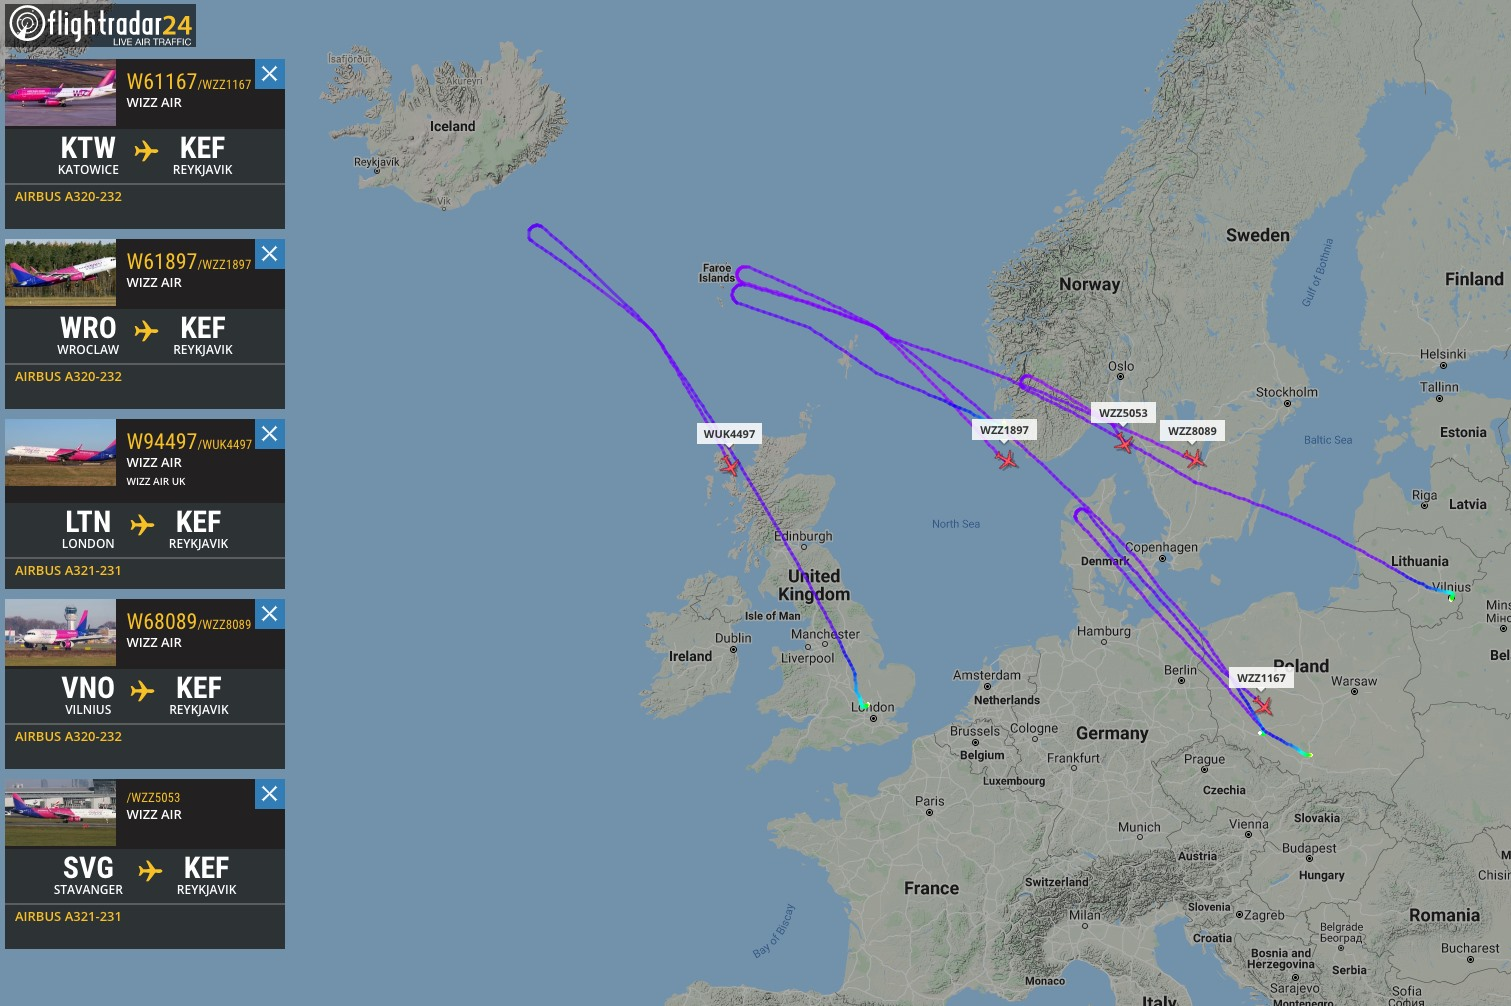 Five WizzAir flights diverted to airports of origin because of the accident in Keflavik // Source: Flightradar24